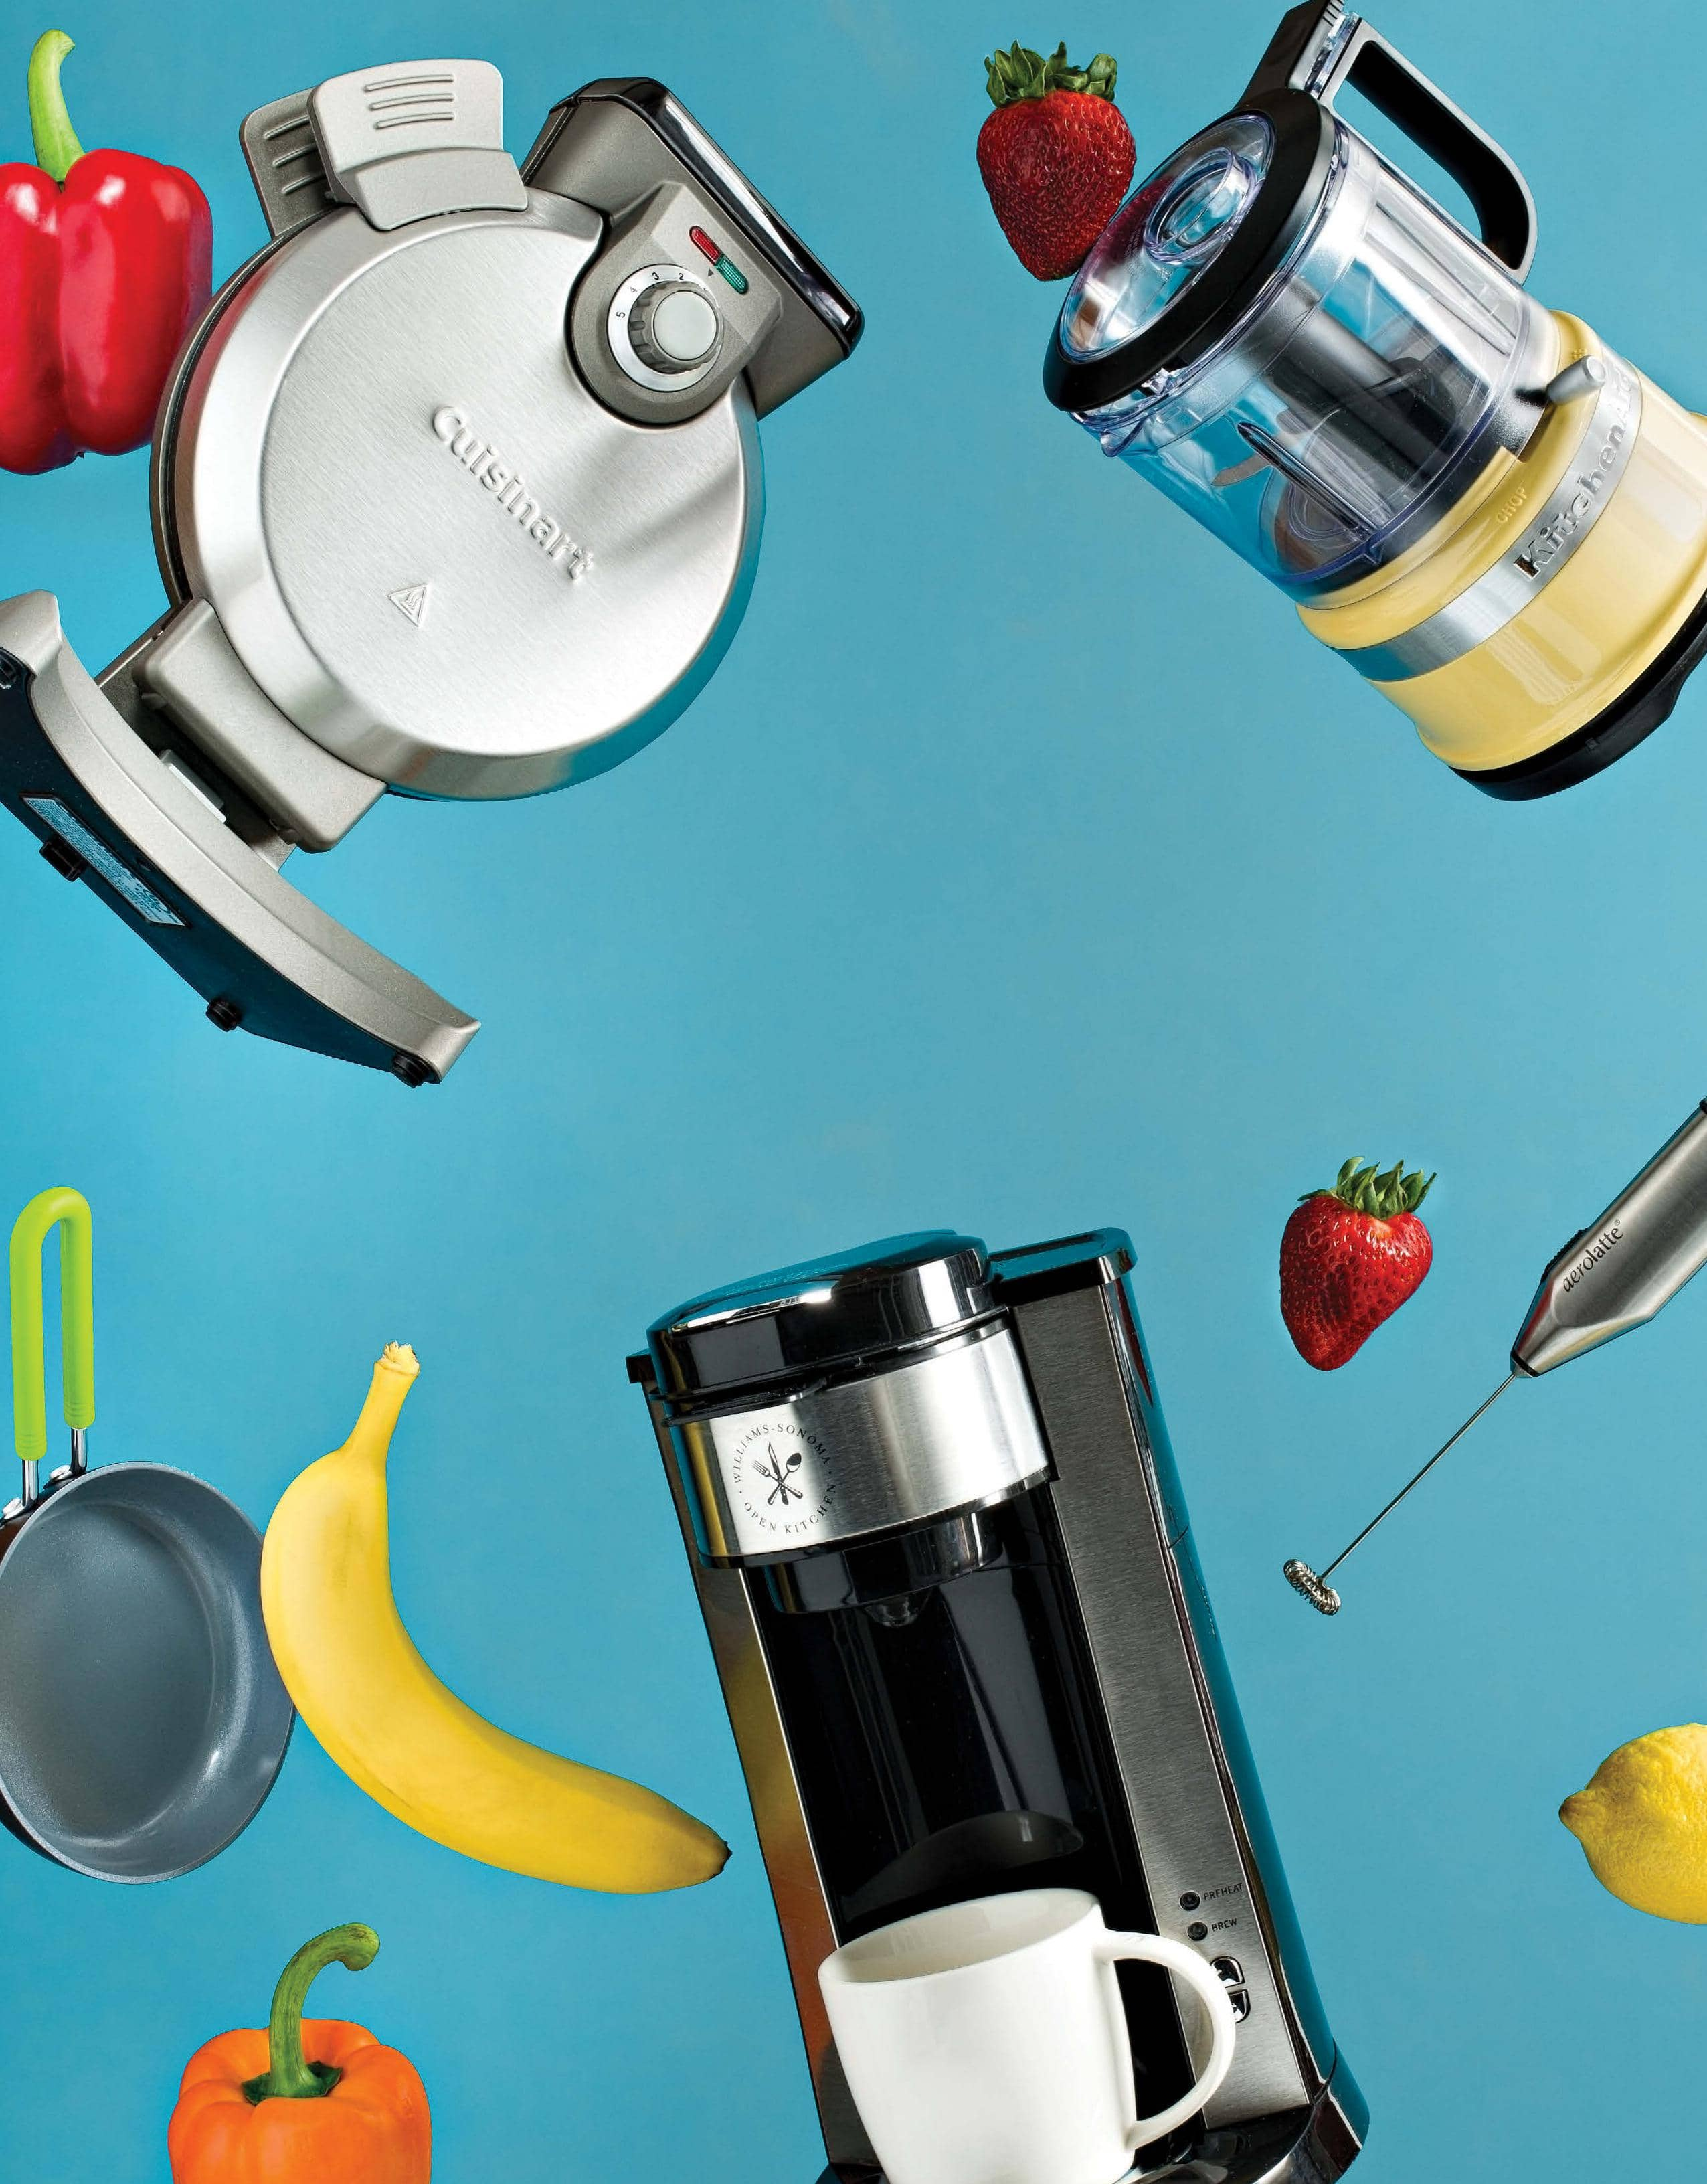 Compact Culinary Appliances To Fit Your Aesthetic